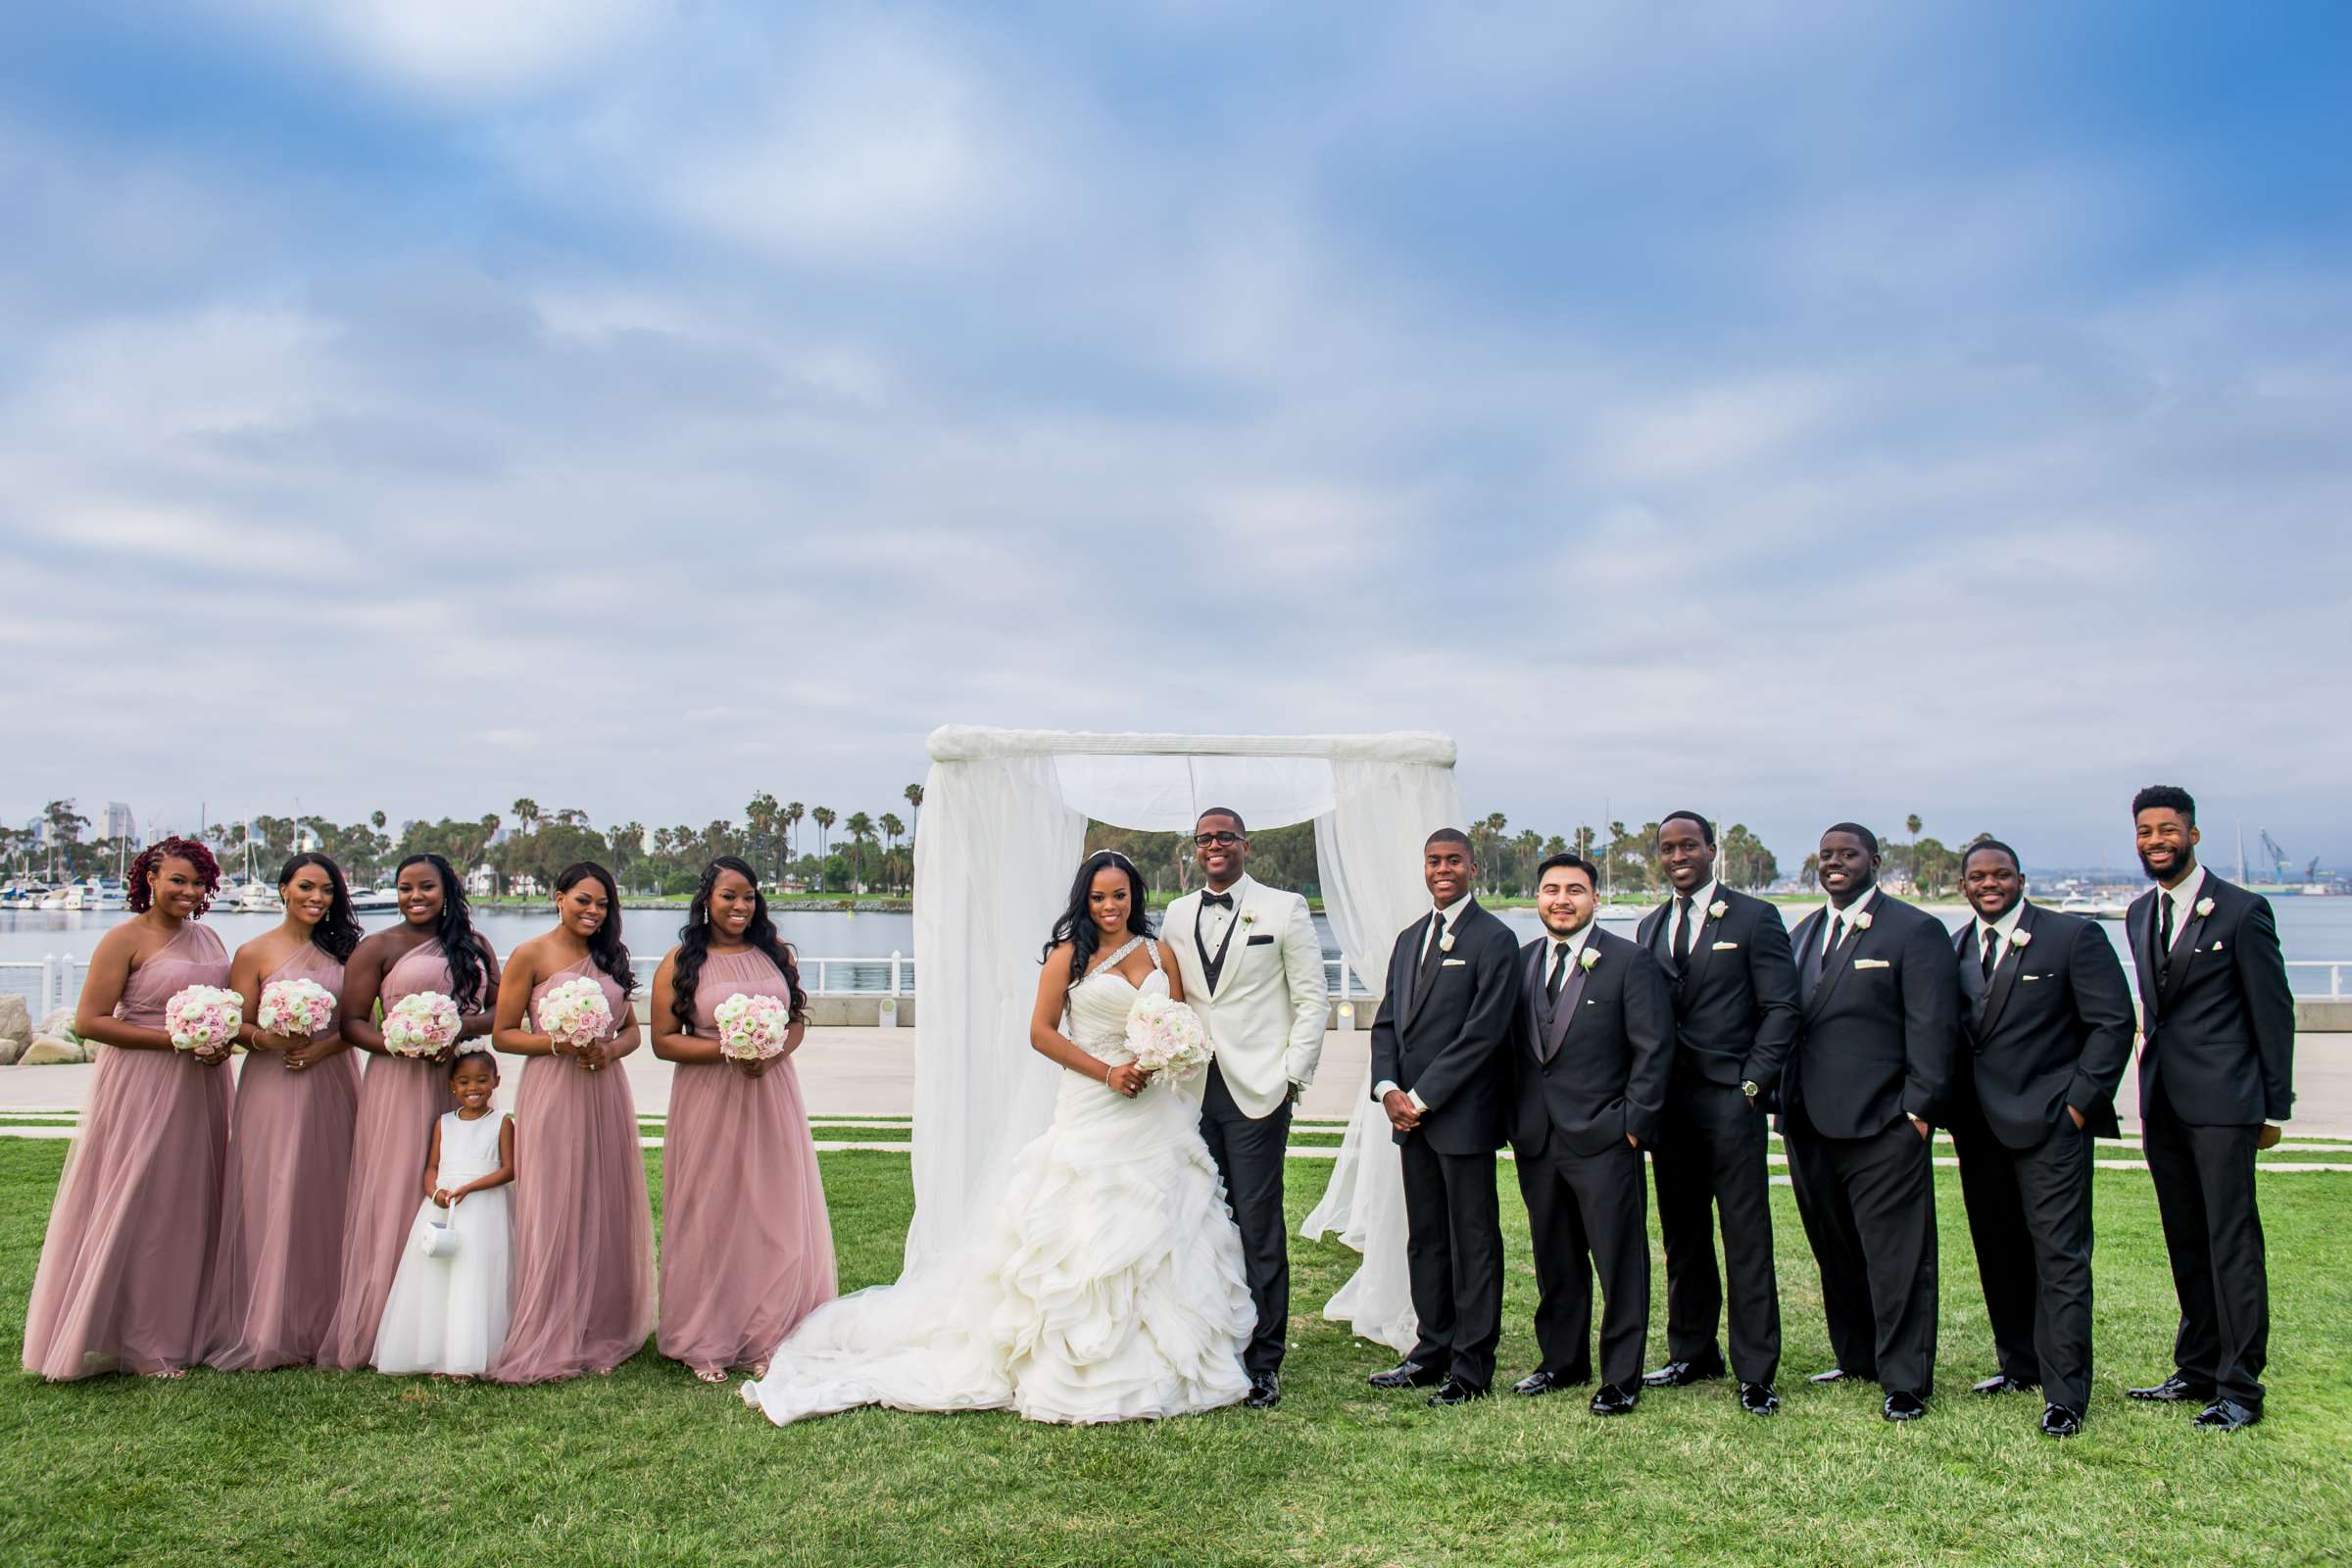 Coronado Community Center Wedding coordinated by First Comes Love Weddings & Events, Nikia and Charles Wedding Photo #64 by True Photography